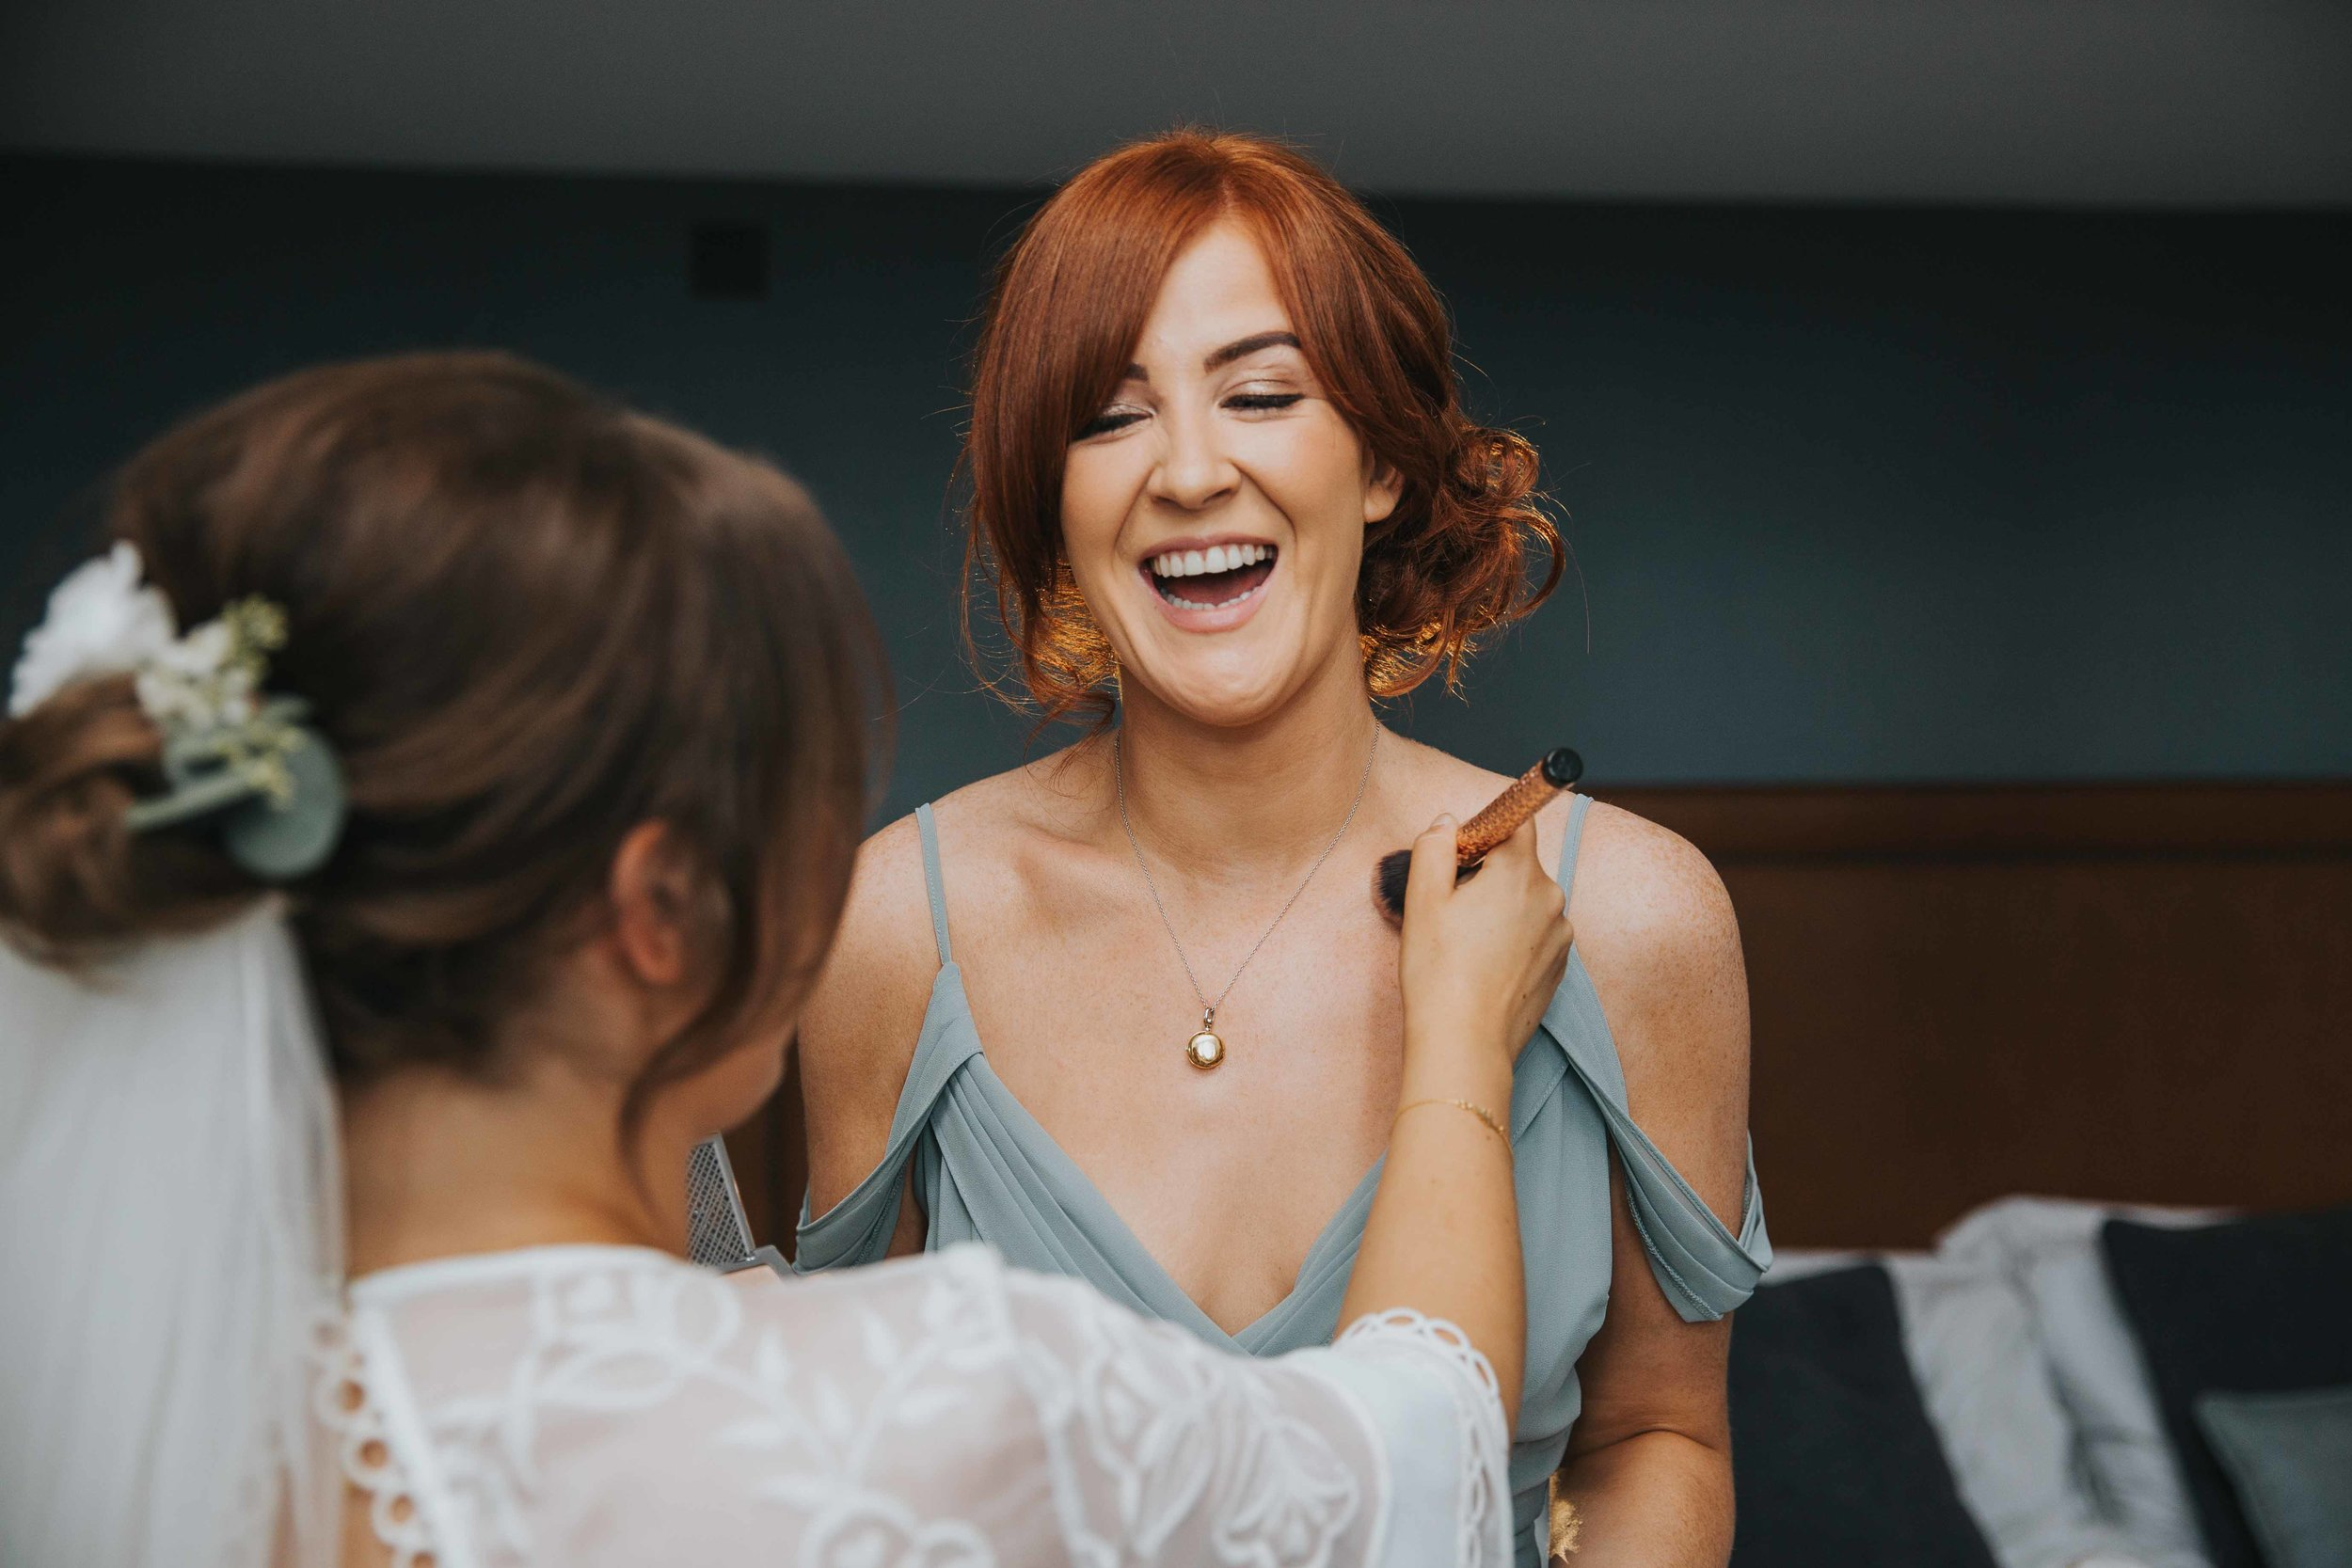 bridesmaids laughing hotel wedding venue Manchester